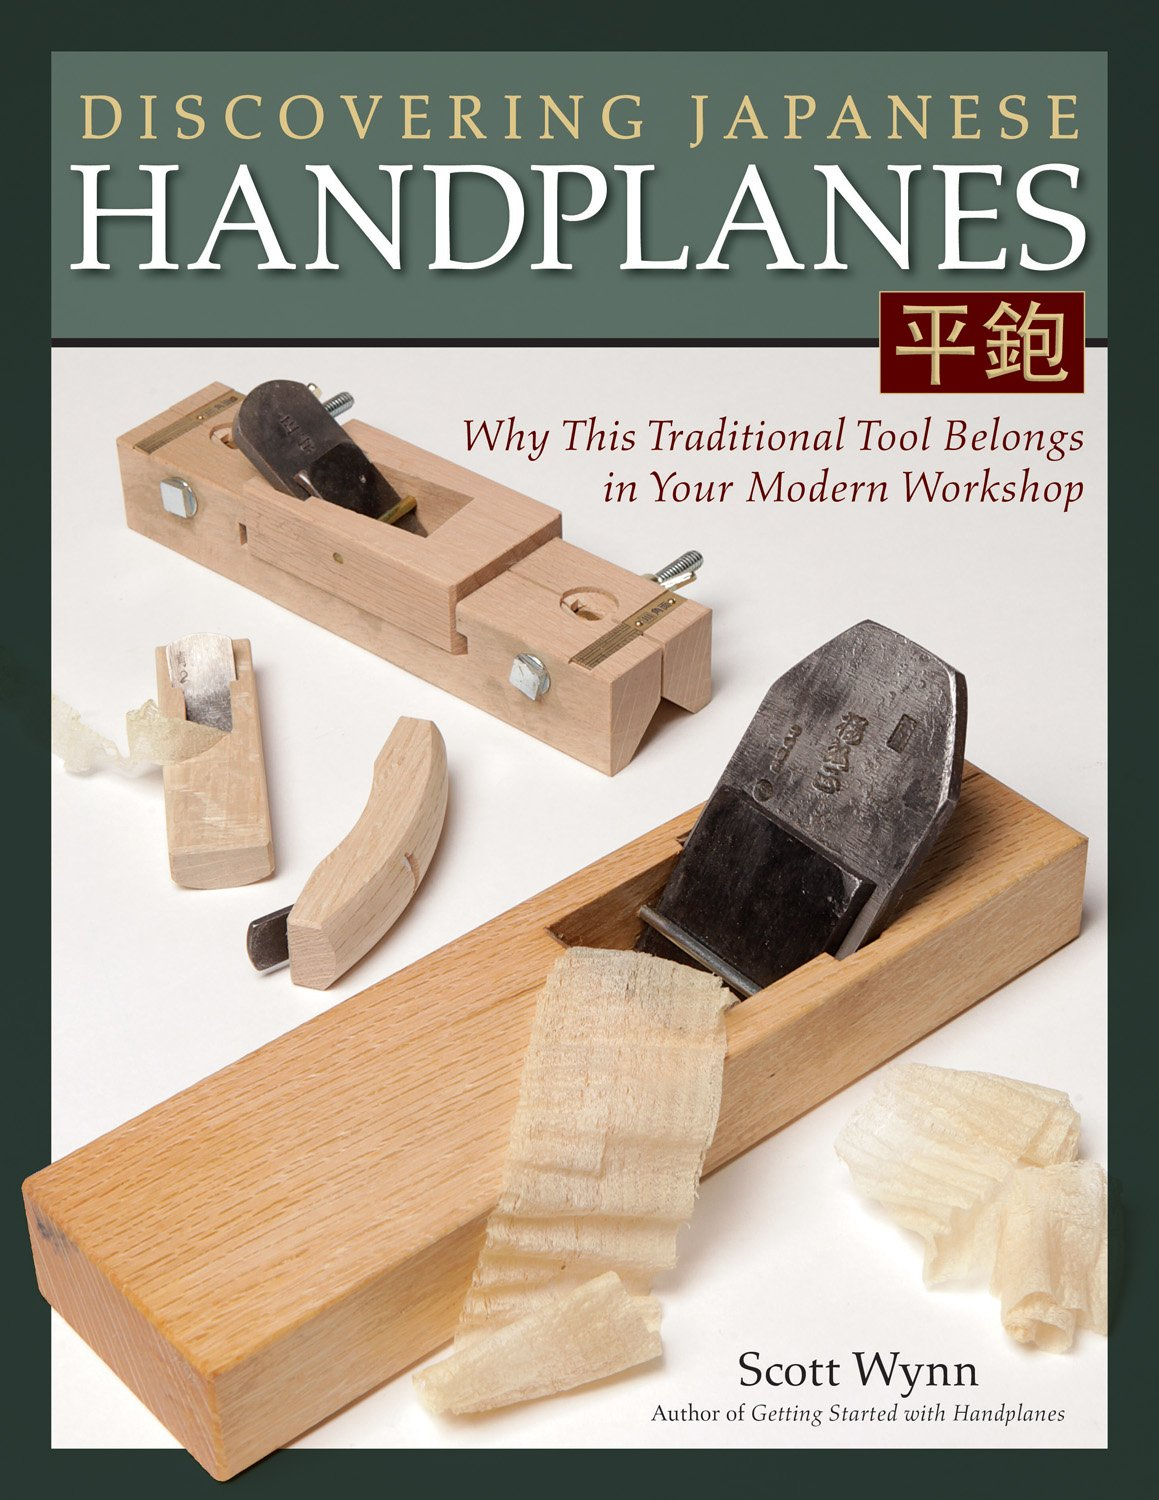 Discovering Japanese Handplanes: Why This Traditional Tool Belongs in Your Modern Workshop by Fox Chapel Publishing (Image #1)